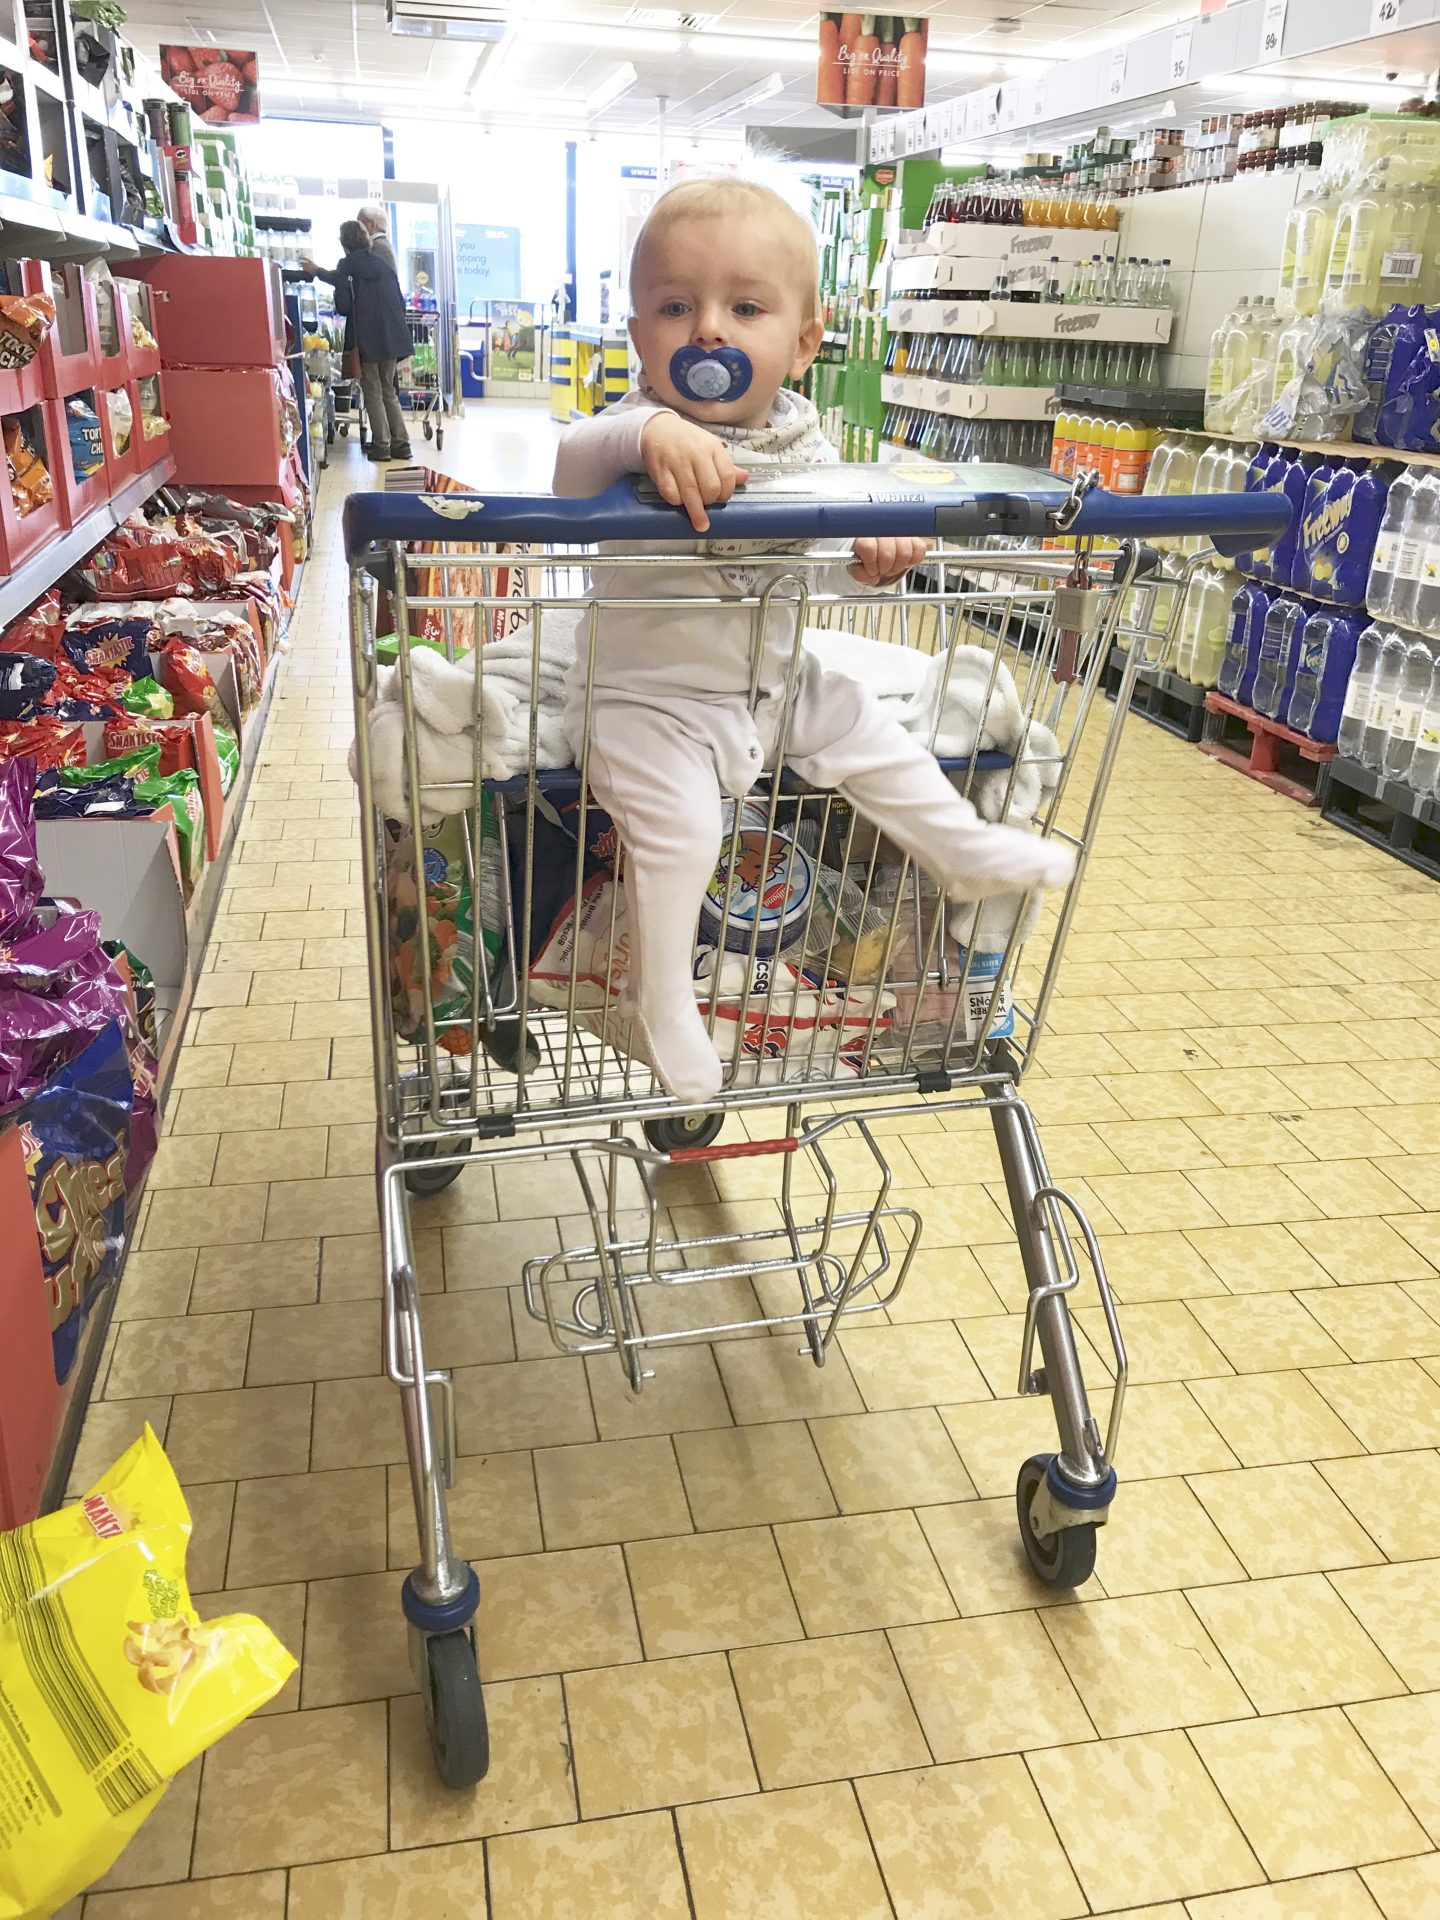 Lidl, why are there no seatbelts on your trollies? – An open letter